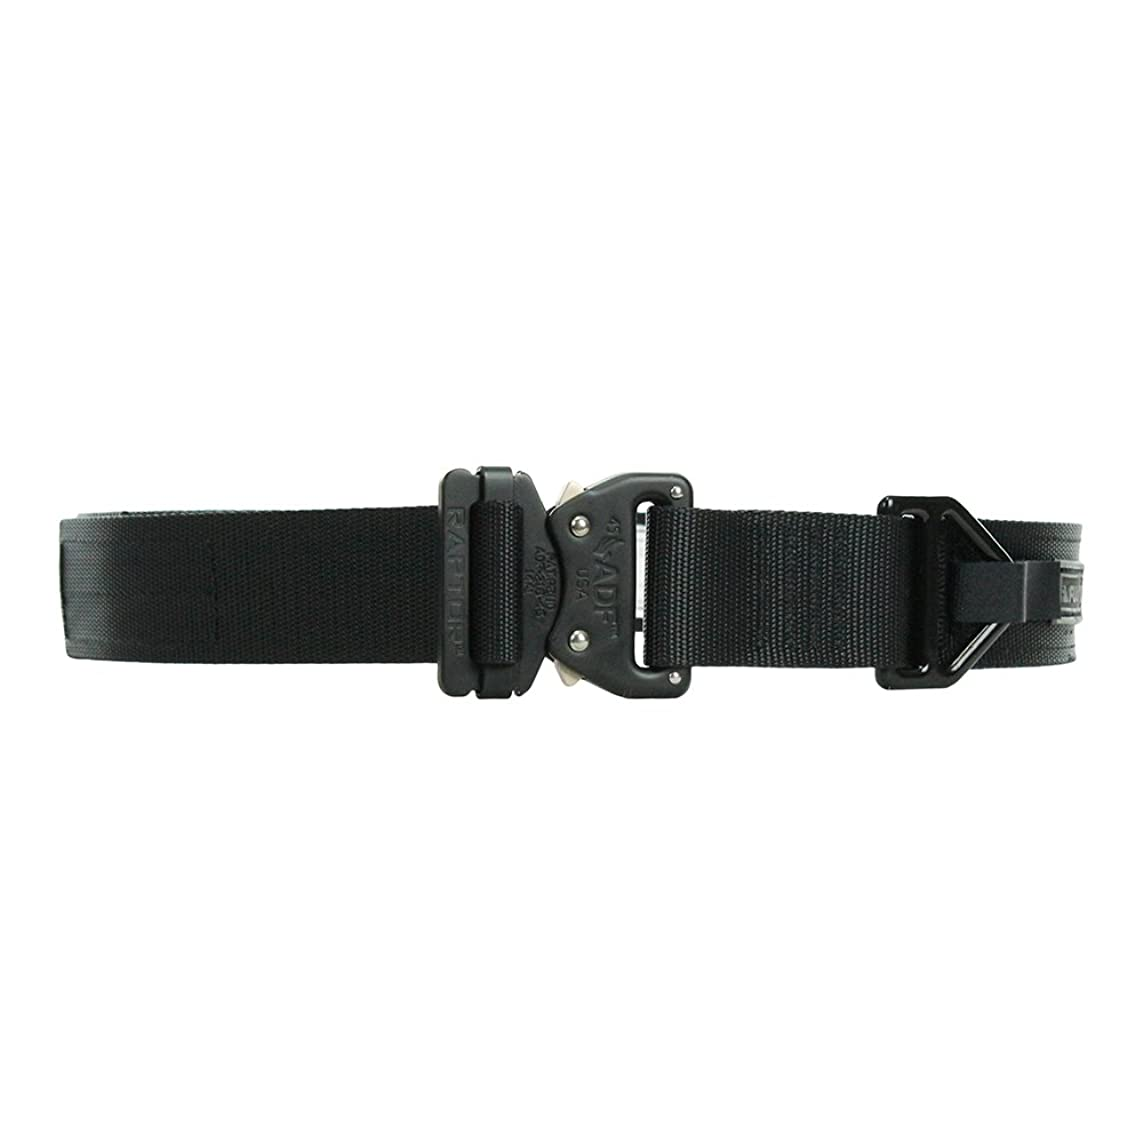 Fusion Tactical Military Police Riggers Belt Type C Black Large 38-43